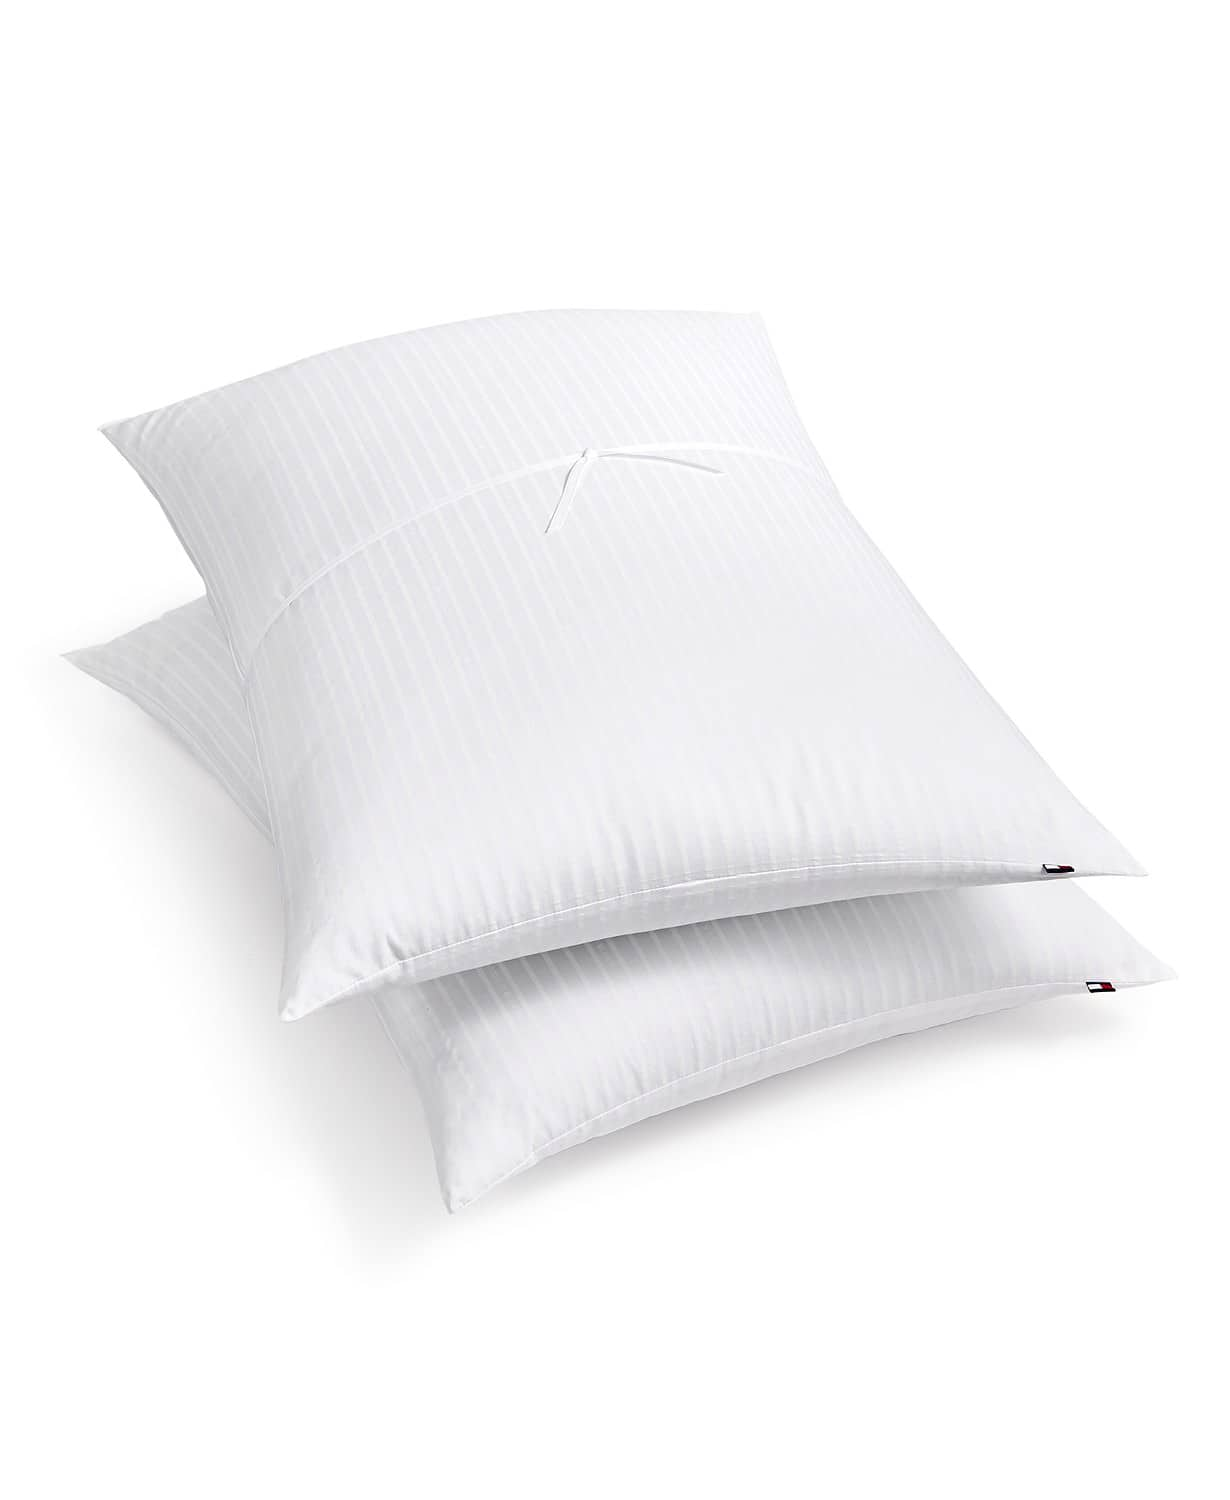 2-Pack Tommy Hilfiger or Nautica Standard Pillows $10 ($5 each pillow) + free shipping + $10 Macy's eGift Card on orders over $25 via Slickdeals rebate $9.99